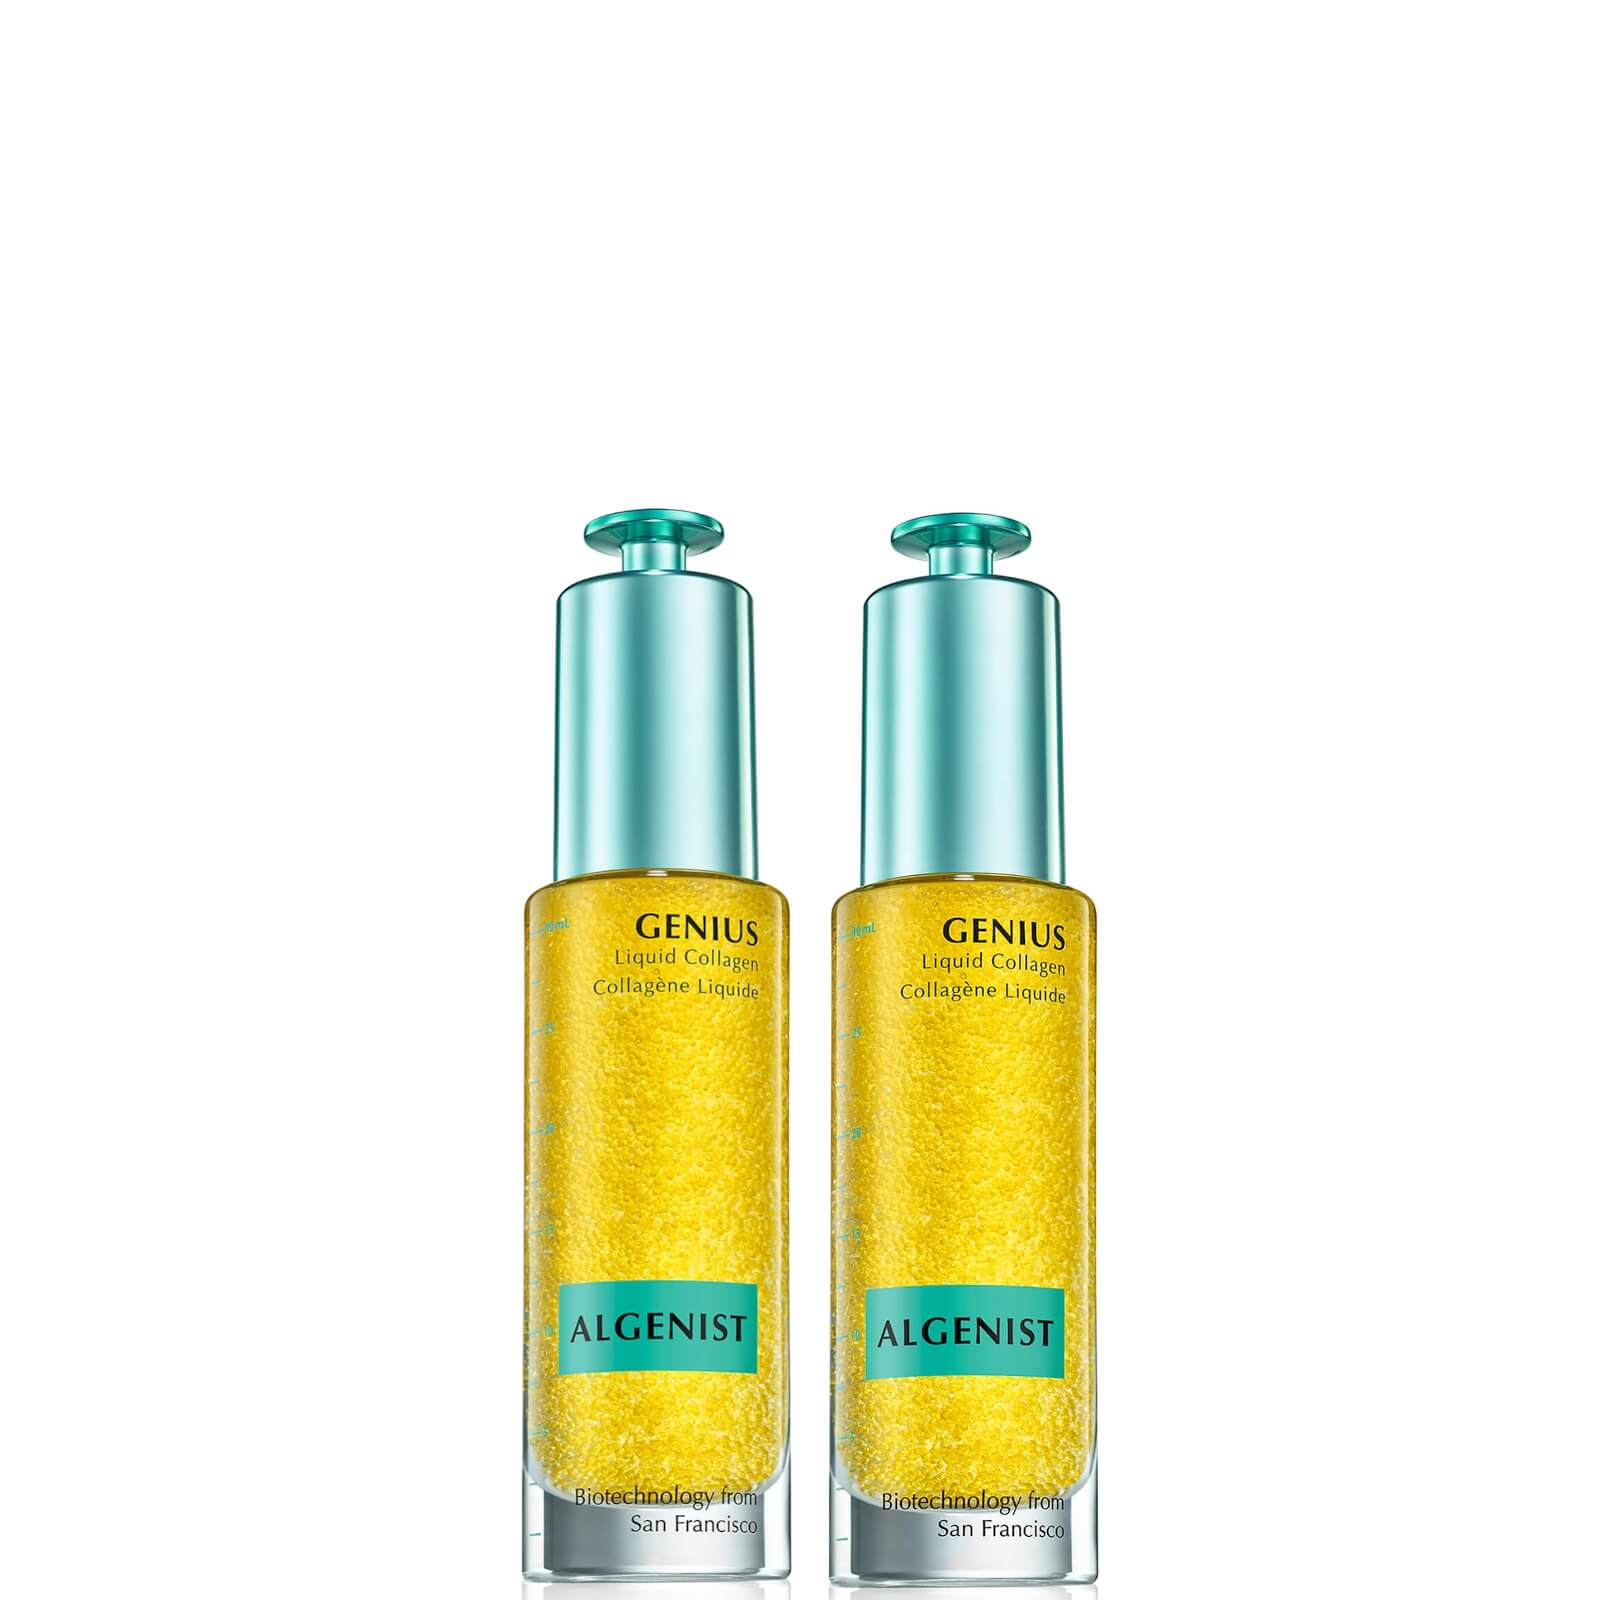 ALGENIST Exclusive GENIUS Liquid Collagen Duo